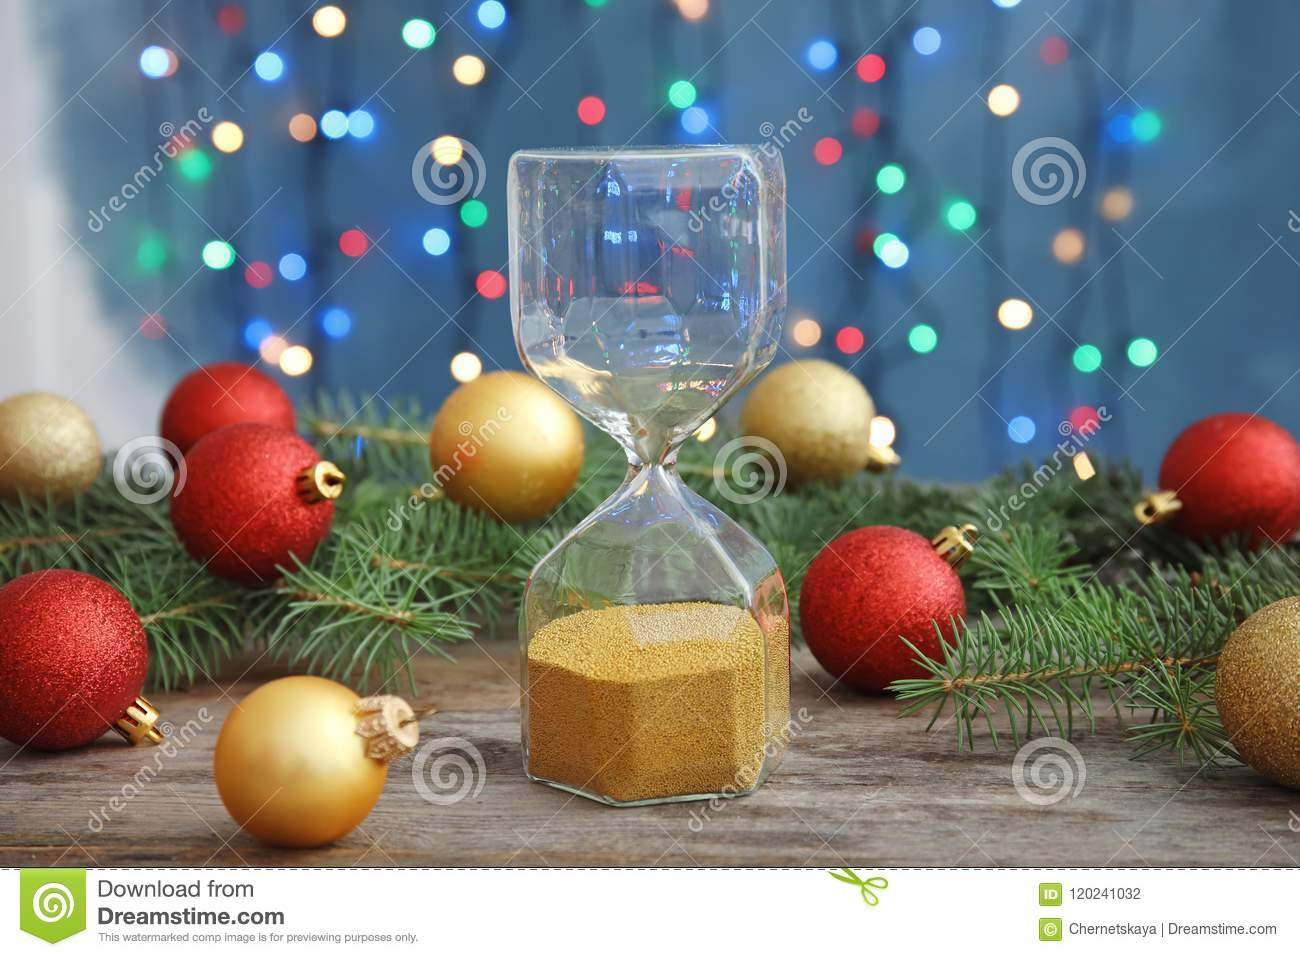 download hourglass and festive decor on table christmas countdown stock photo image of background